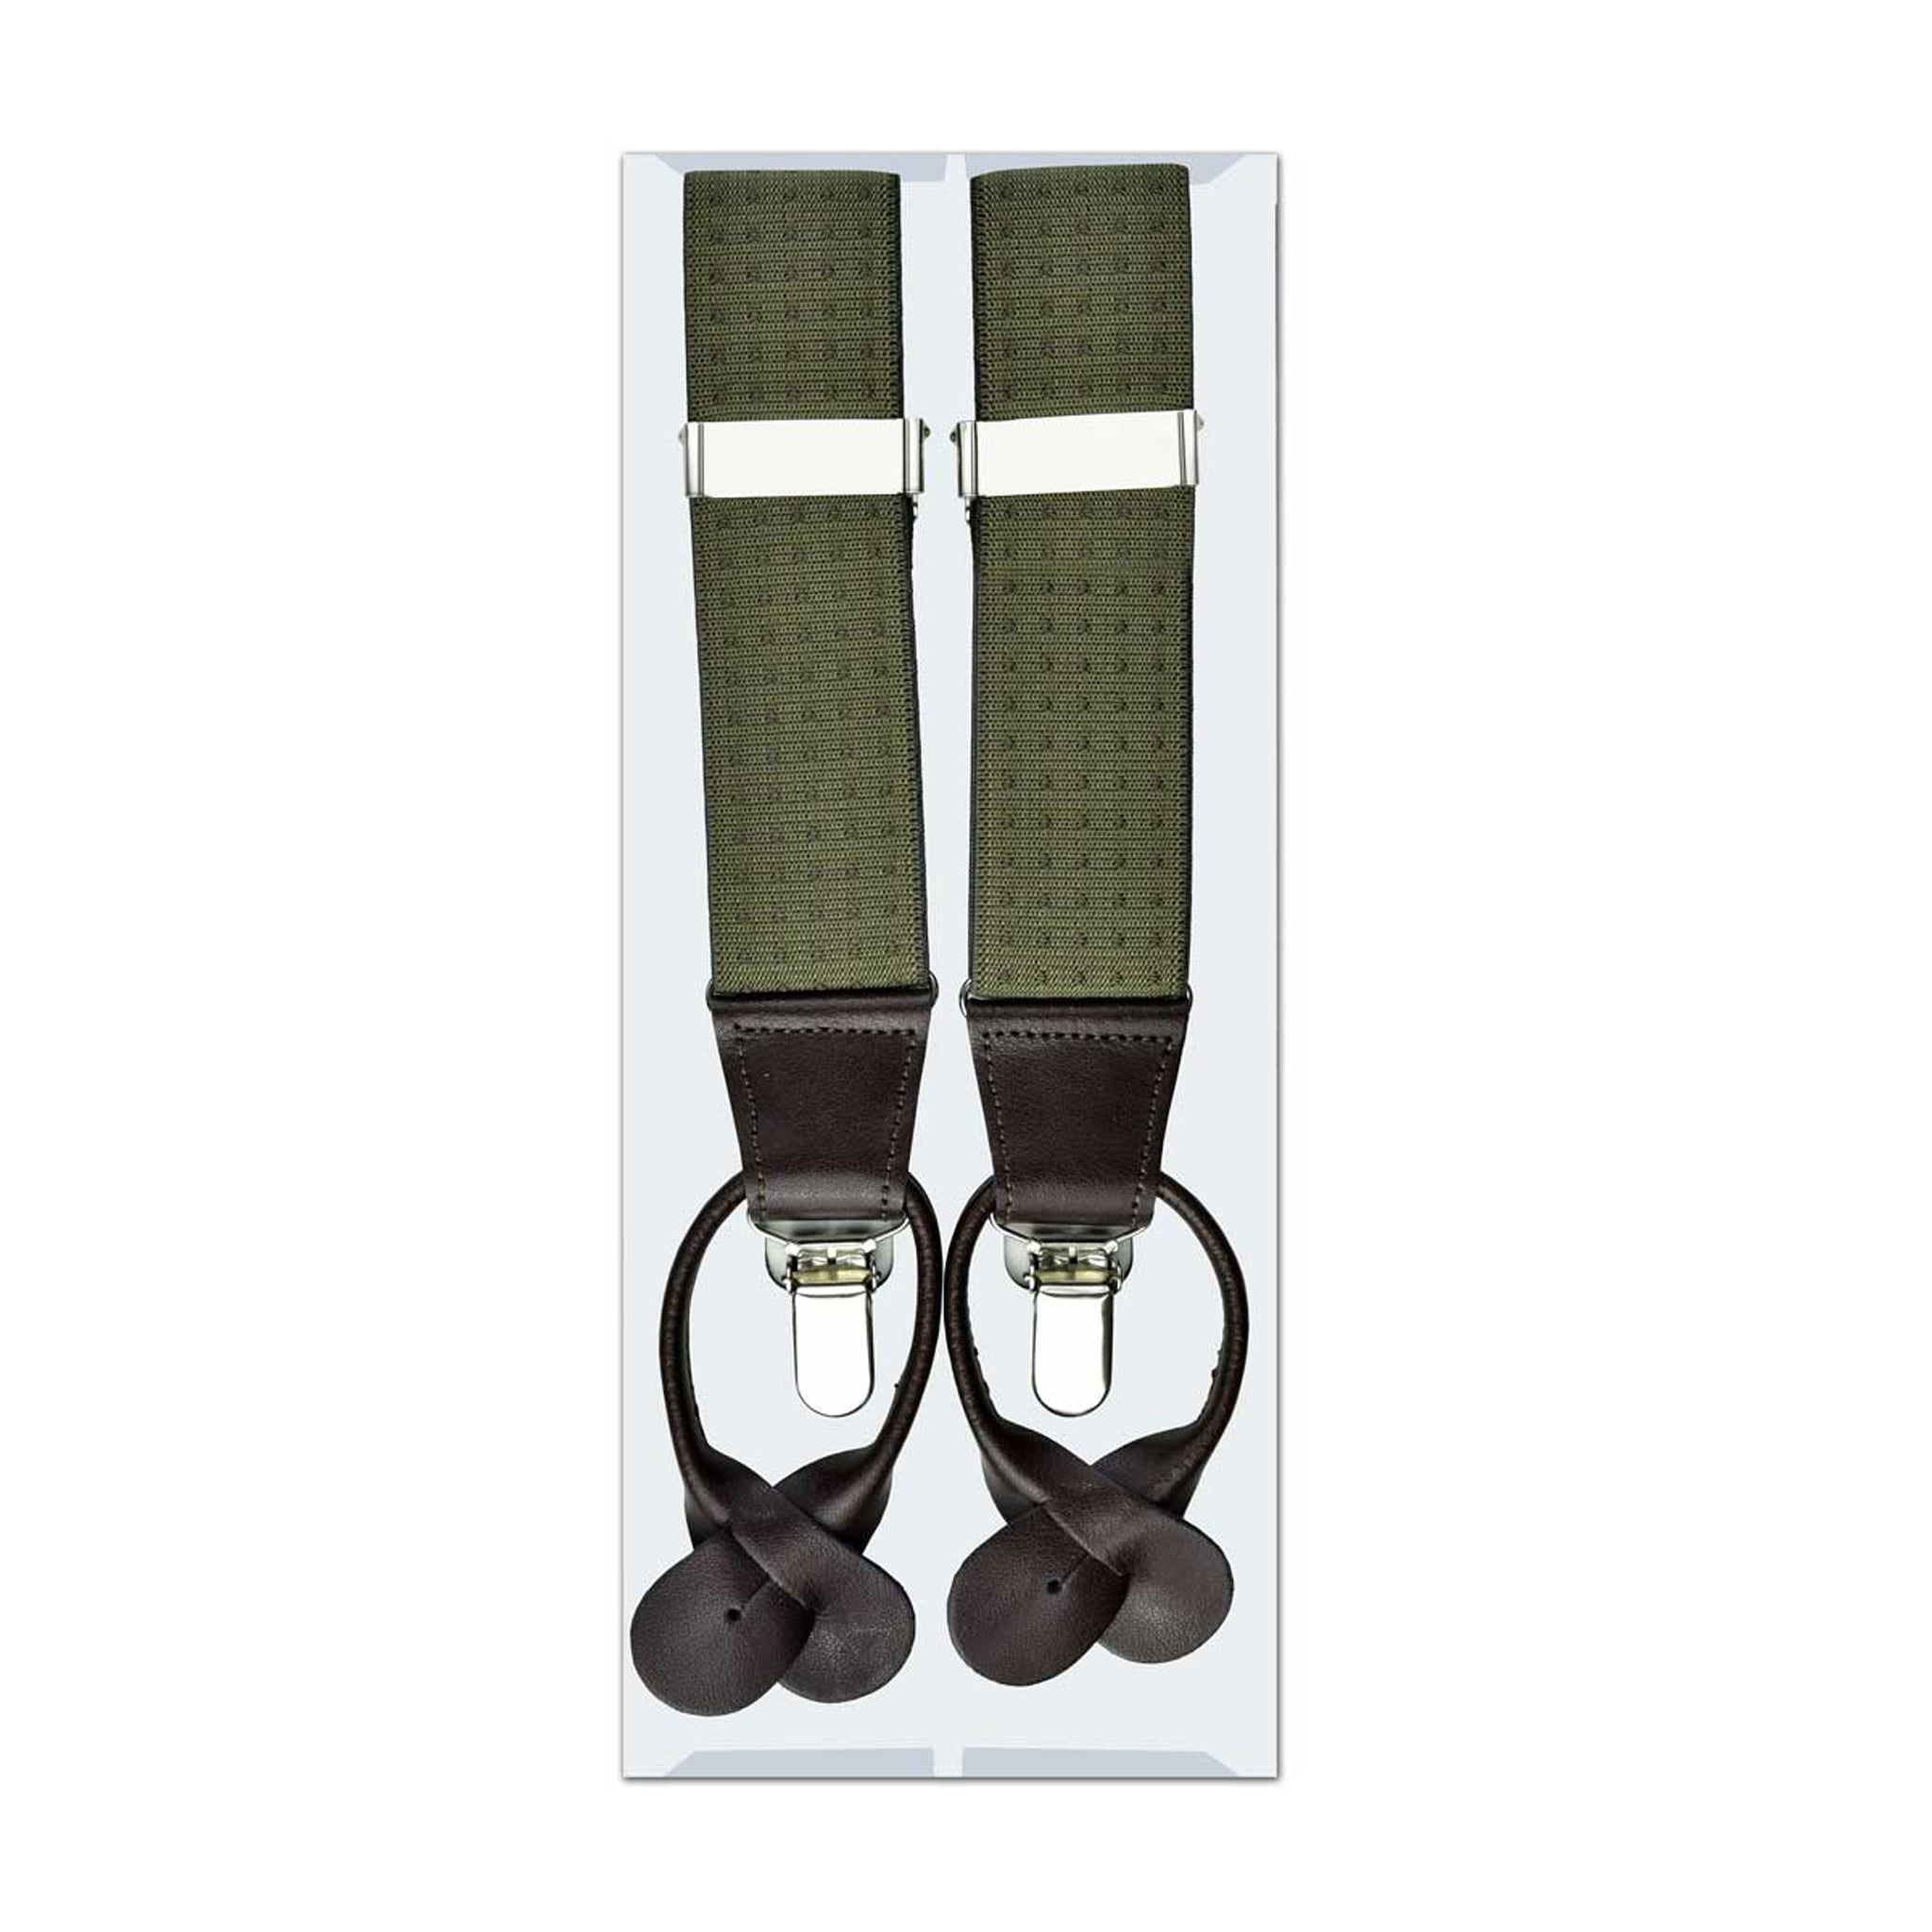 MISSOURI Holden Suspenders in Olive - Giorgio Mandelli® Official Site | GIORGIO MANDELLI Made in Italy